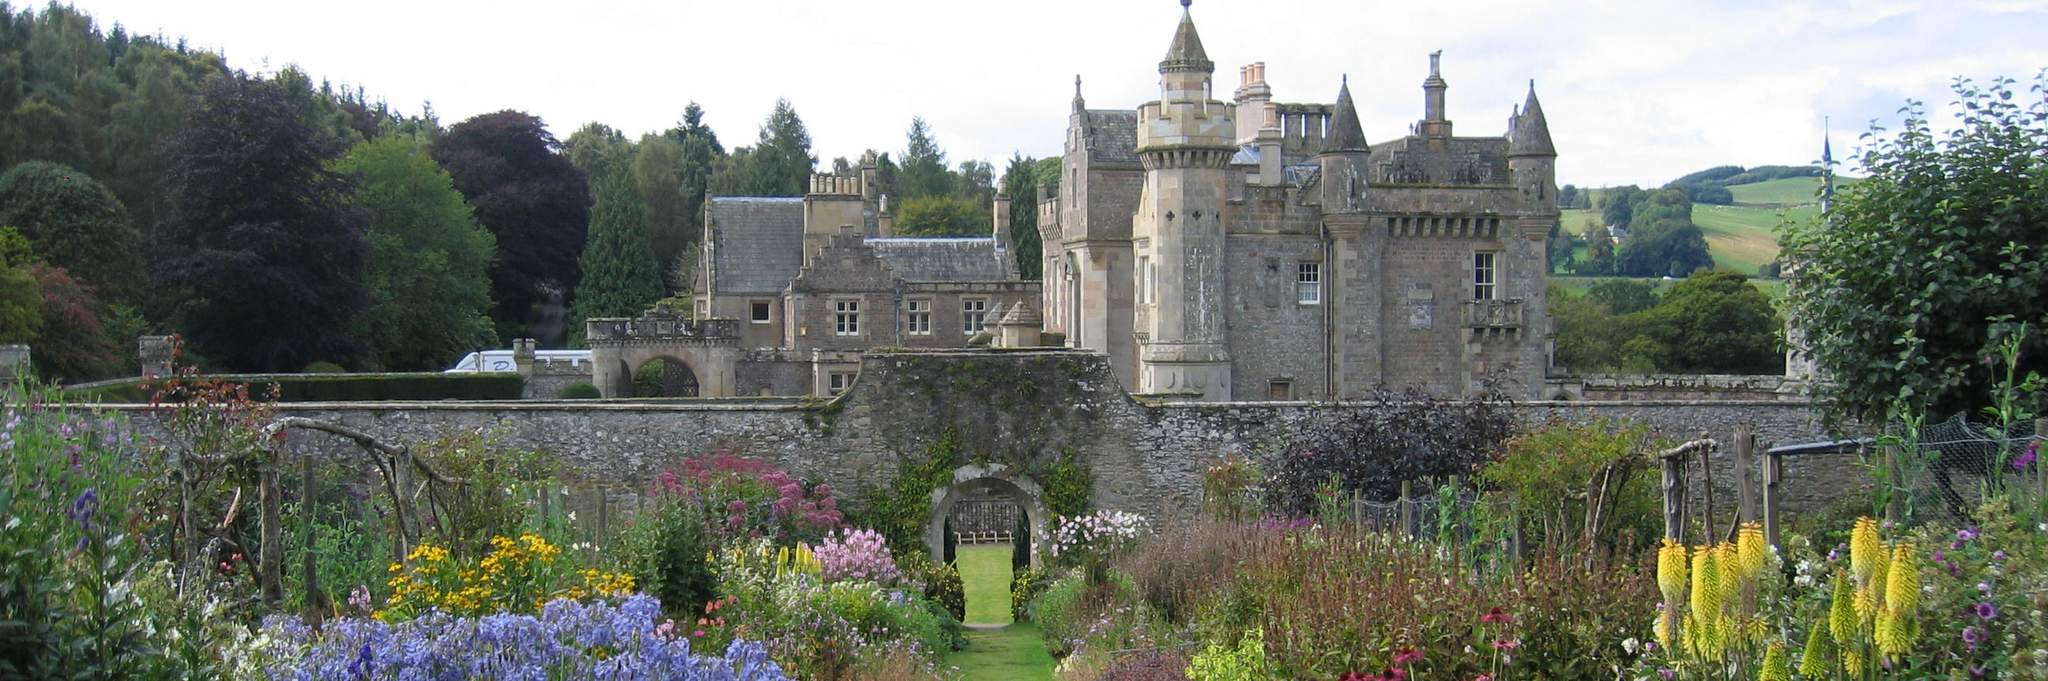 Abbotsford House in the Scottish Borders